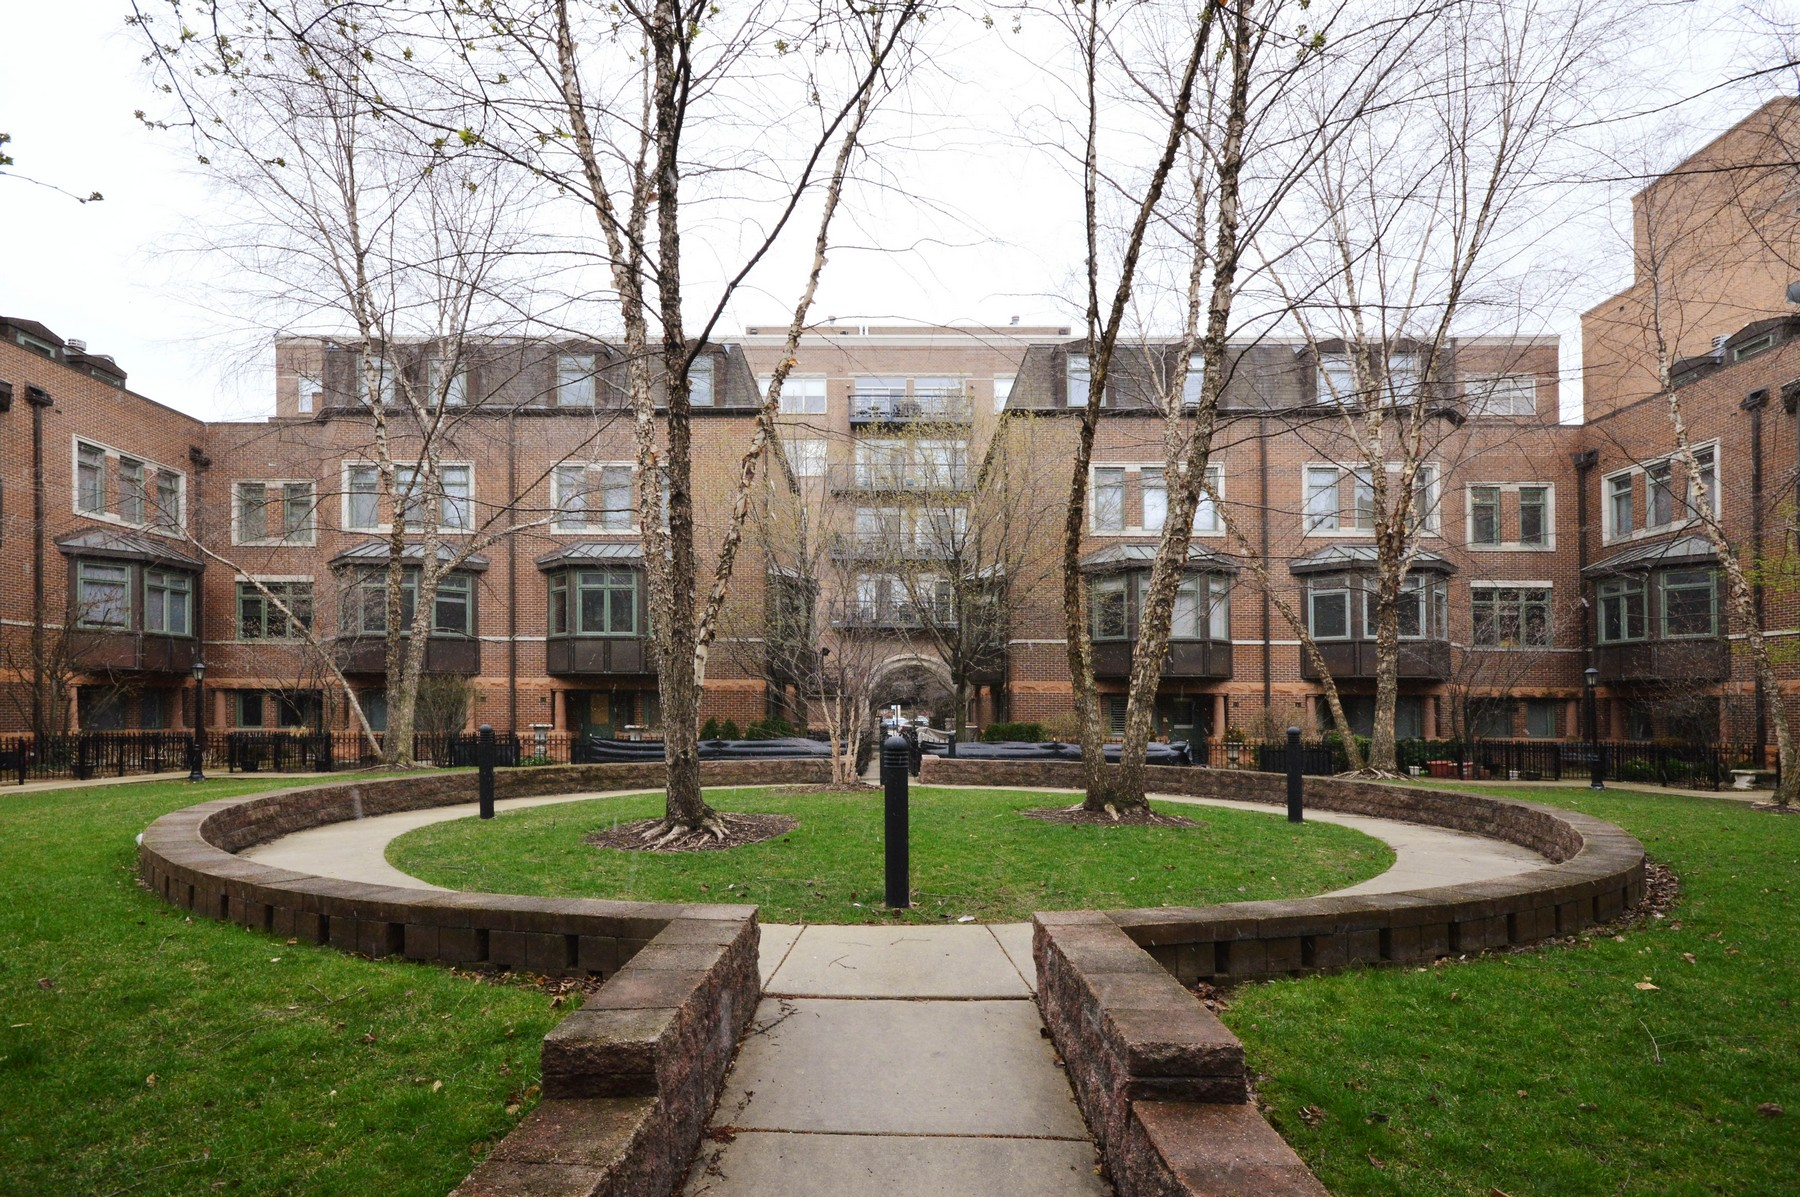 Single Family Home for Sale at Spacious and Sunny Townhome 1351 W Altgeld Street Unit 4E Lincoln Park, Chicago, Illinois, 60614 United States